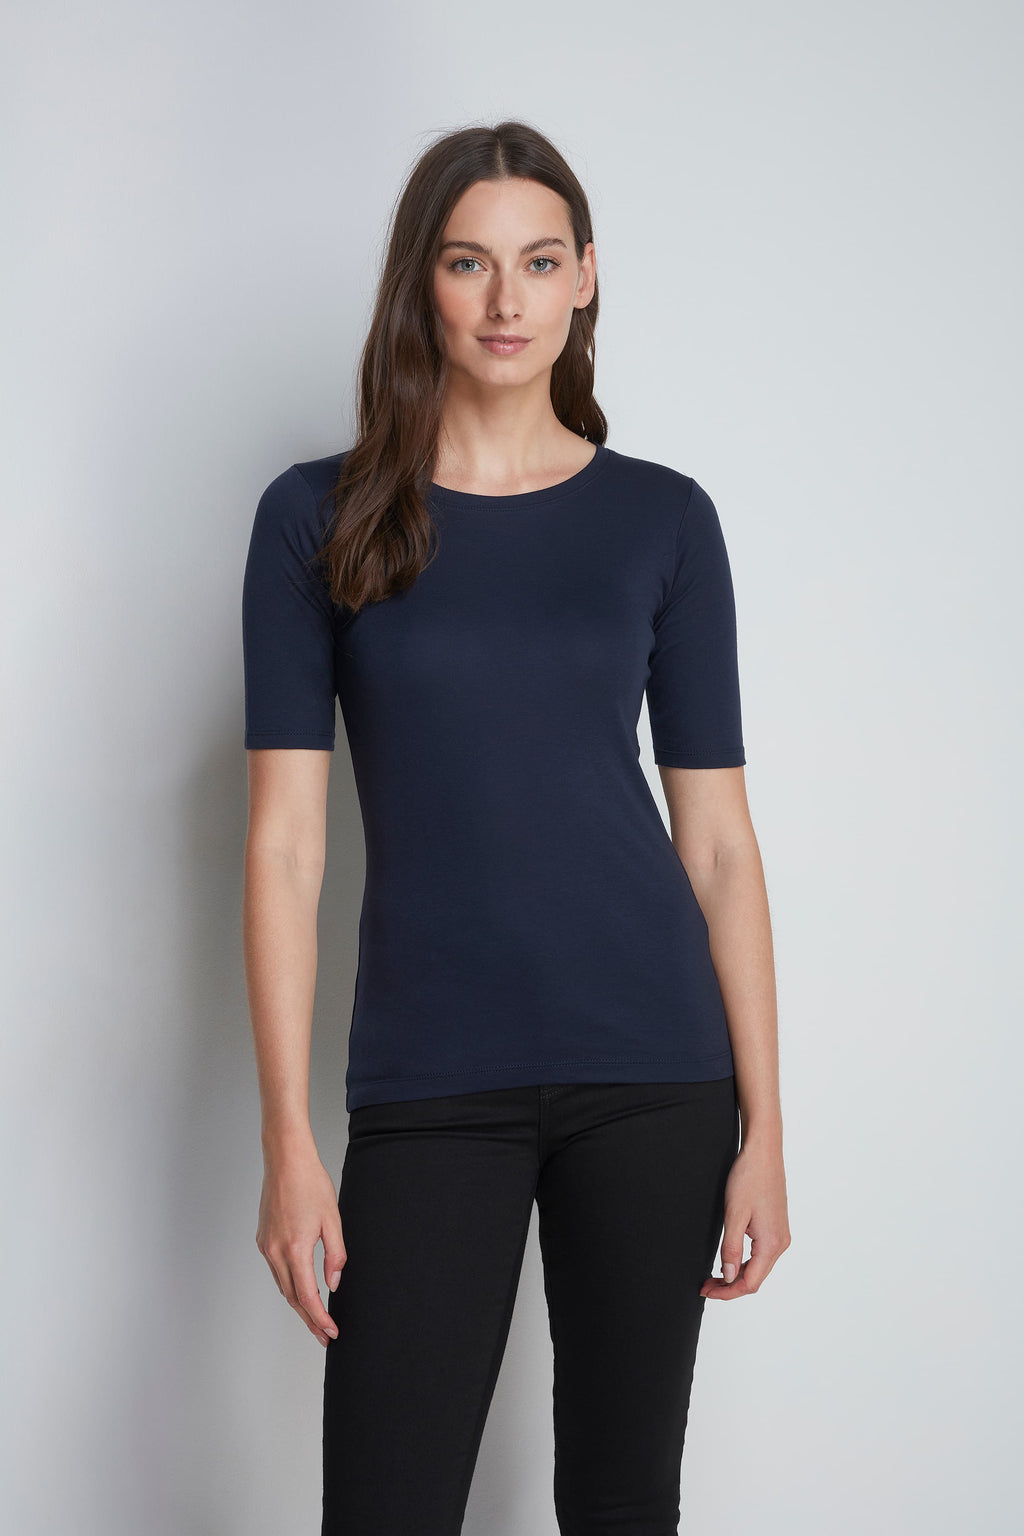 High Quality Half Sleeve Crew Neck T-Shirt - Comfortable Crew Neck - Luxury Half Sleeve T-Shirt - Navy Half Sleeve Crew Neck T-Shirt